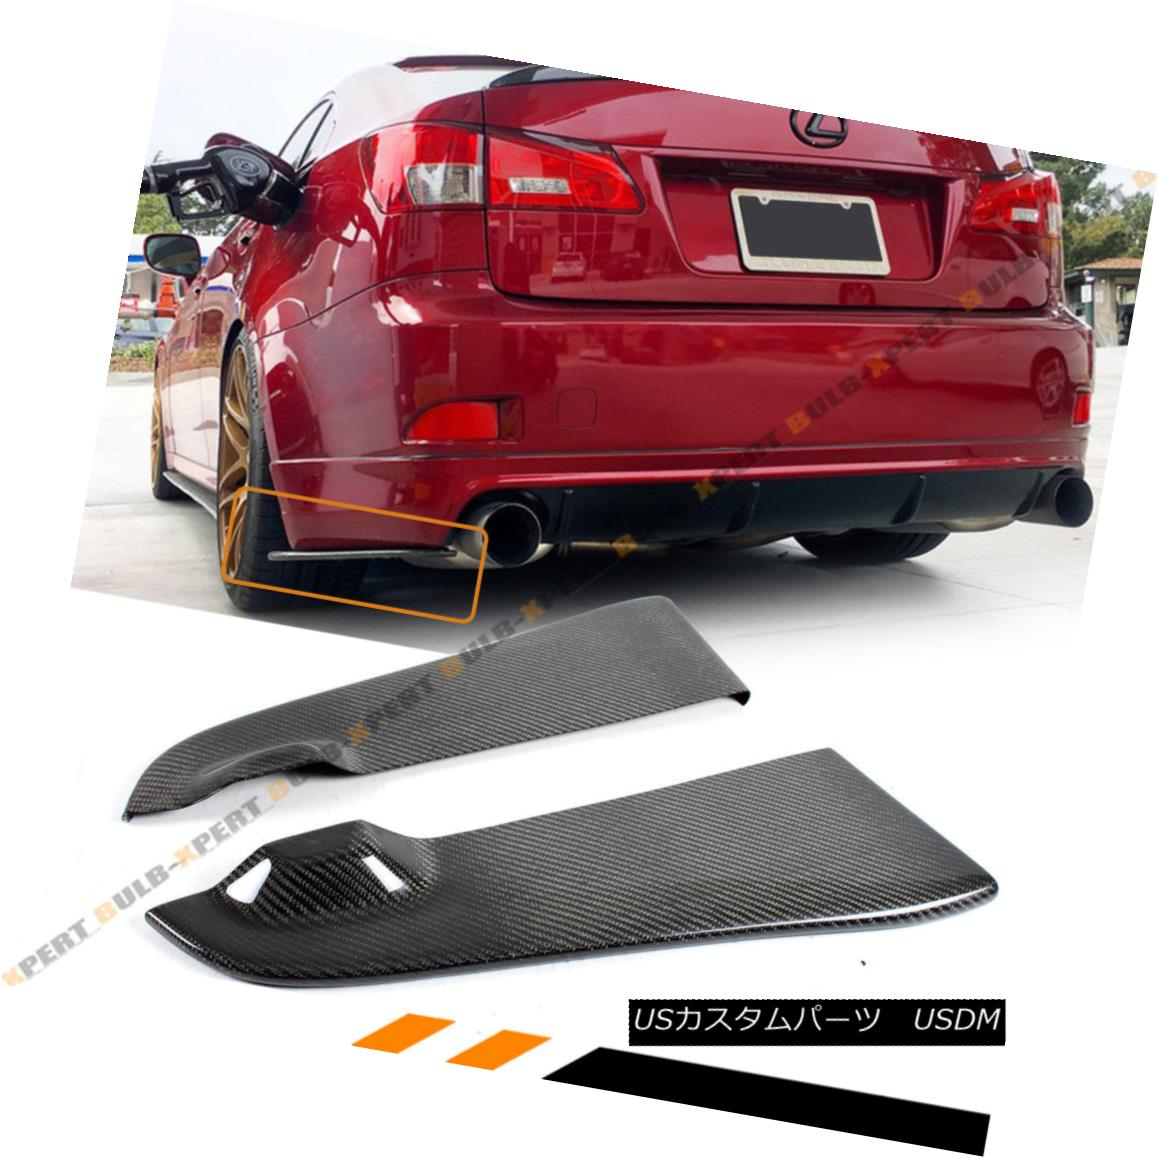 エアロパーツ FOR 06-13 LEXUS IS250 IS350 ISF CARBON FIBER REAR BUMPER LOWER SIDE APRON SPATS FOR 06-13レクサスIS250 IS350 ISF炭素繊維リアバンパー下部APRON SPATS